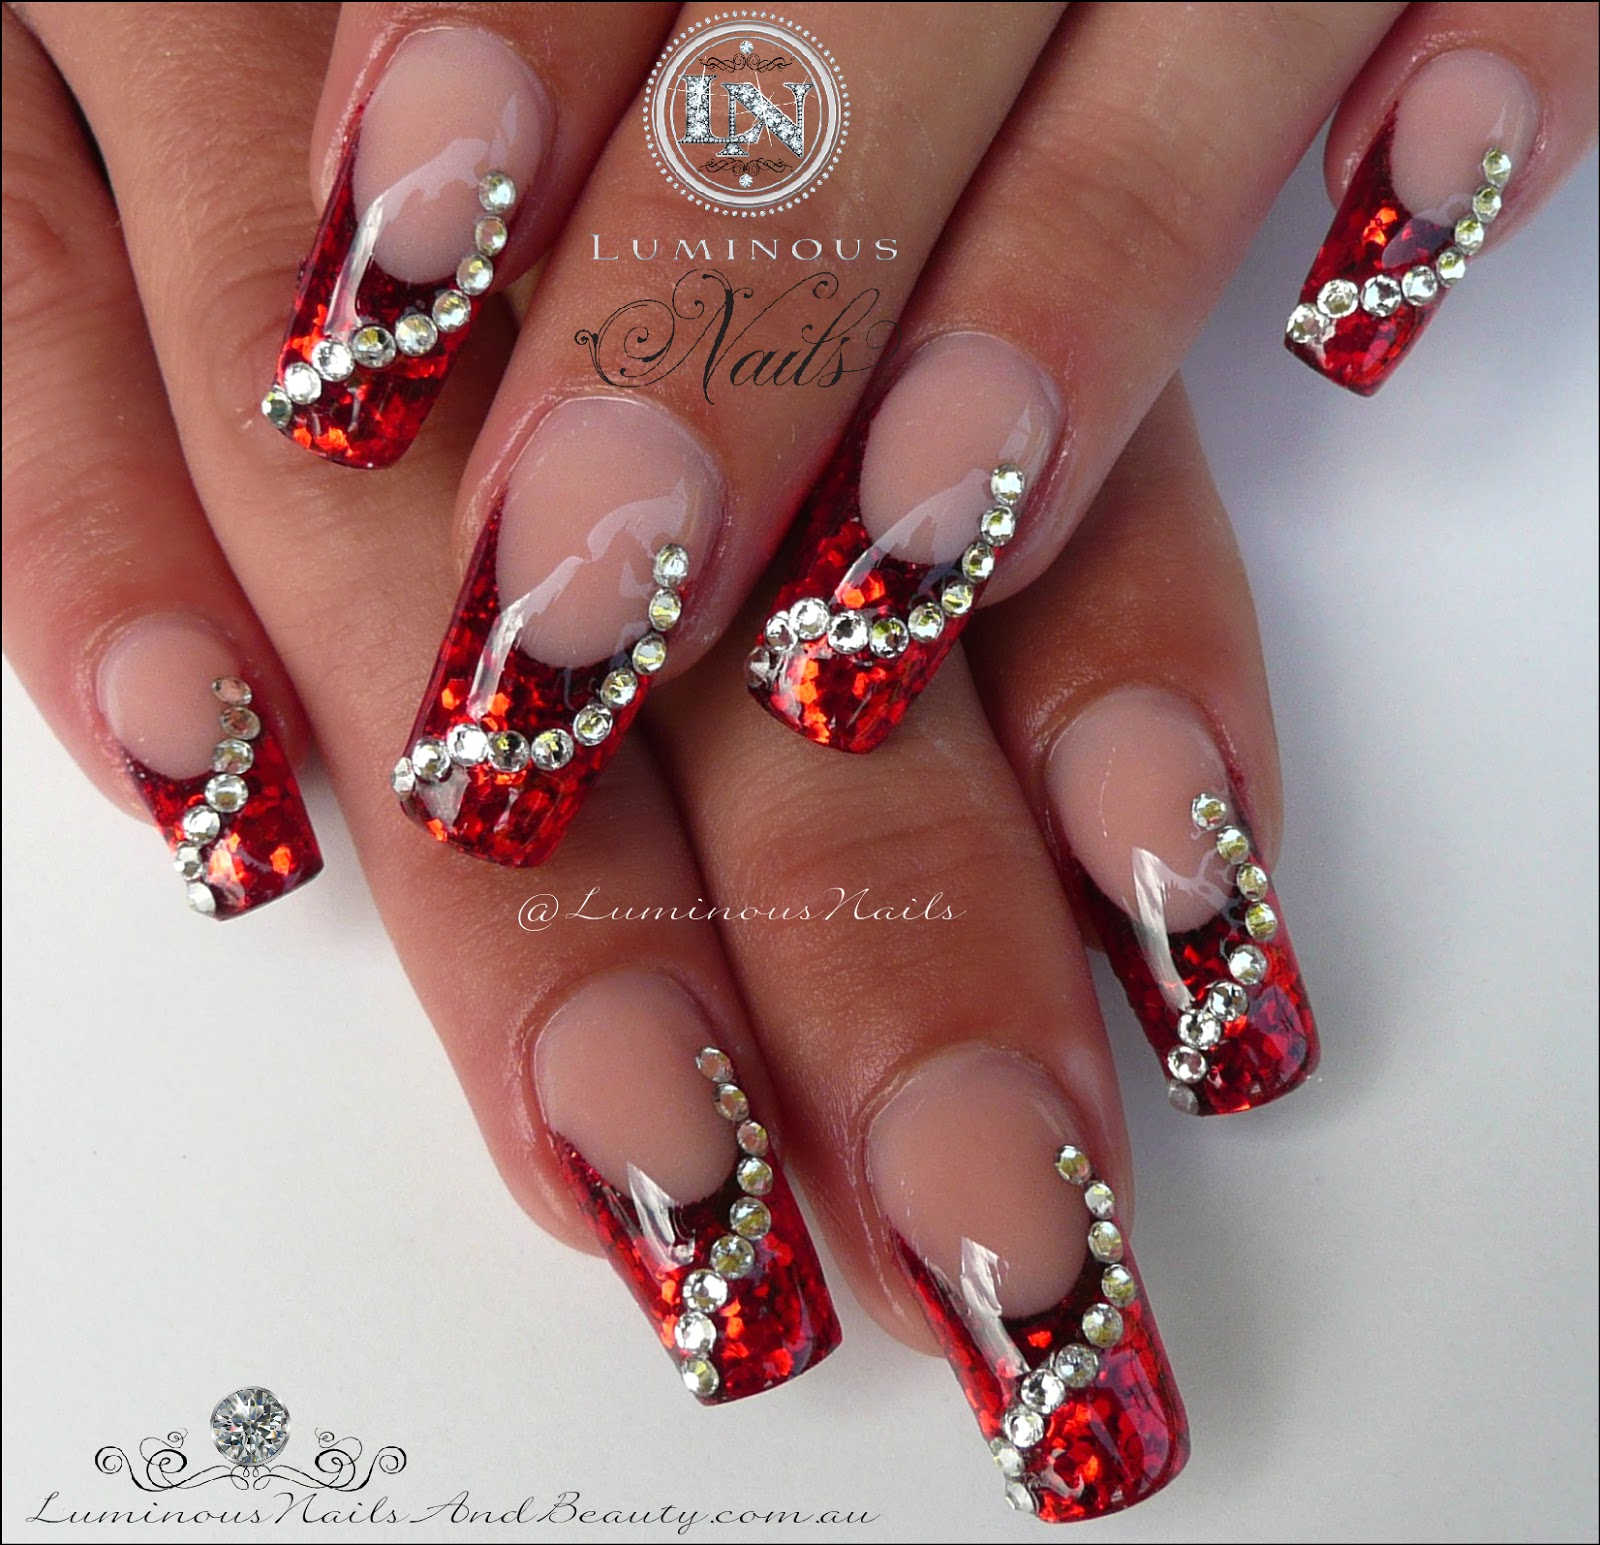 Christmas Nails With Glitter: Luminous Nails: Glittery Red Christmas Nails With